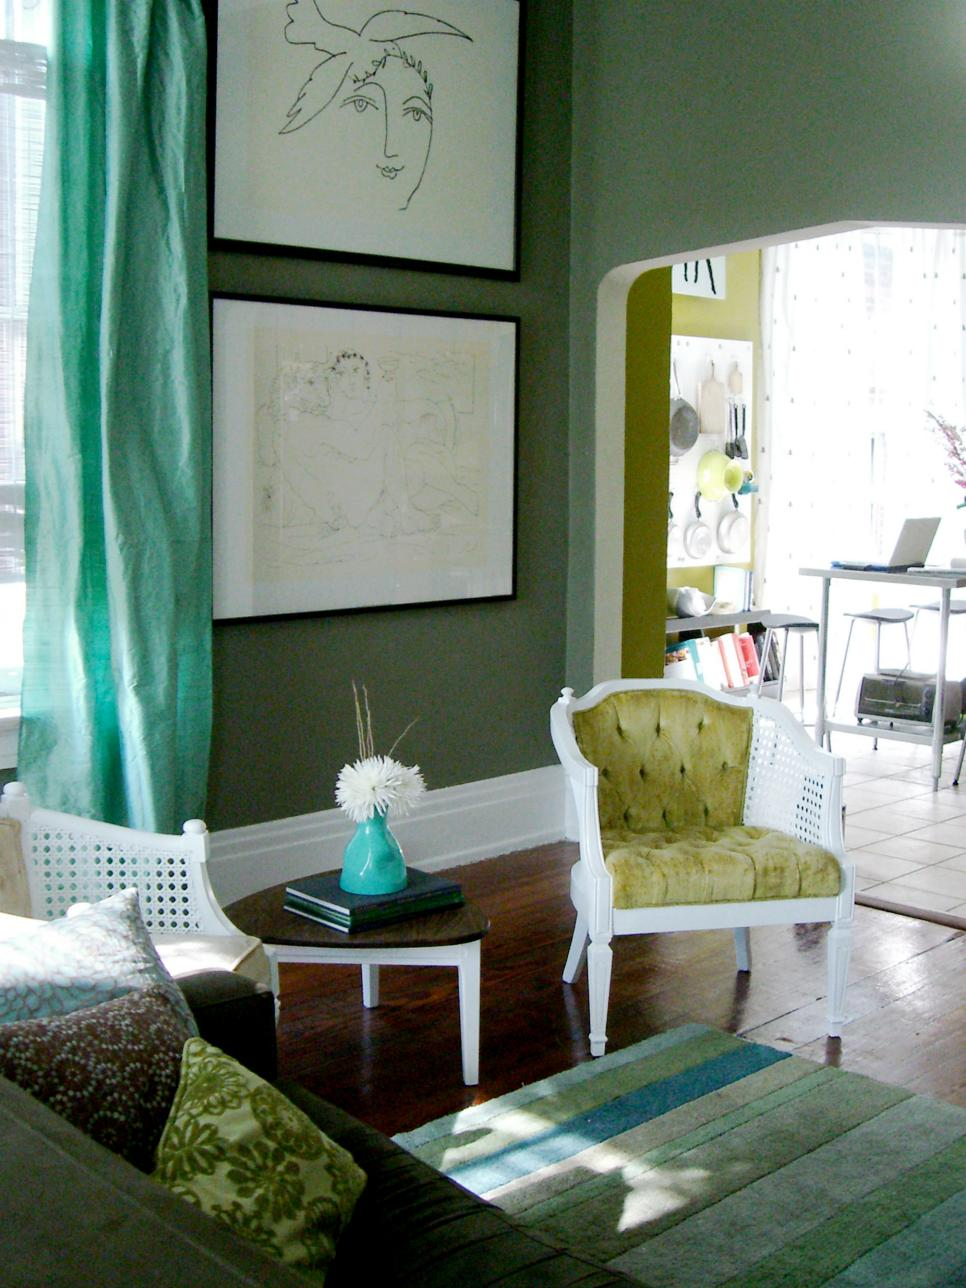 paint colors for living room top living room colors and paint ideas | hgtv pghzcff